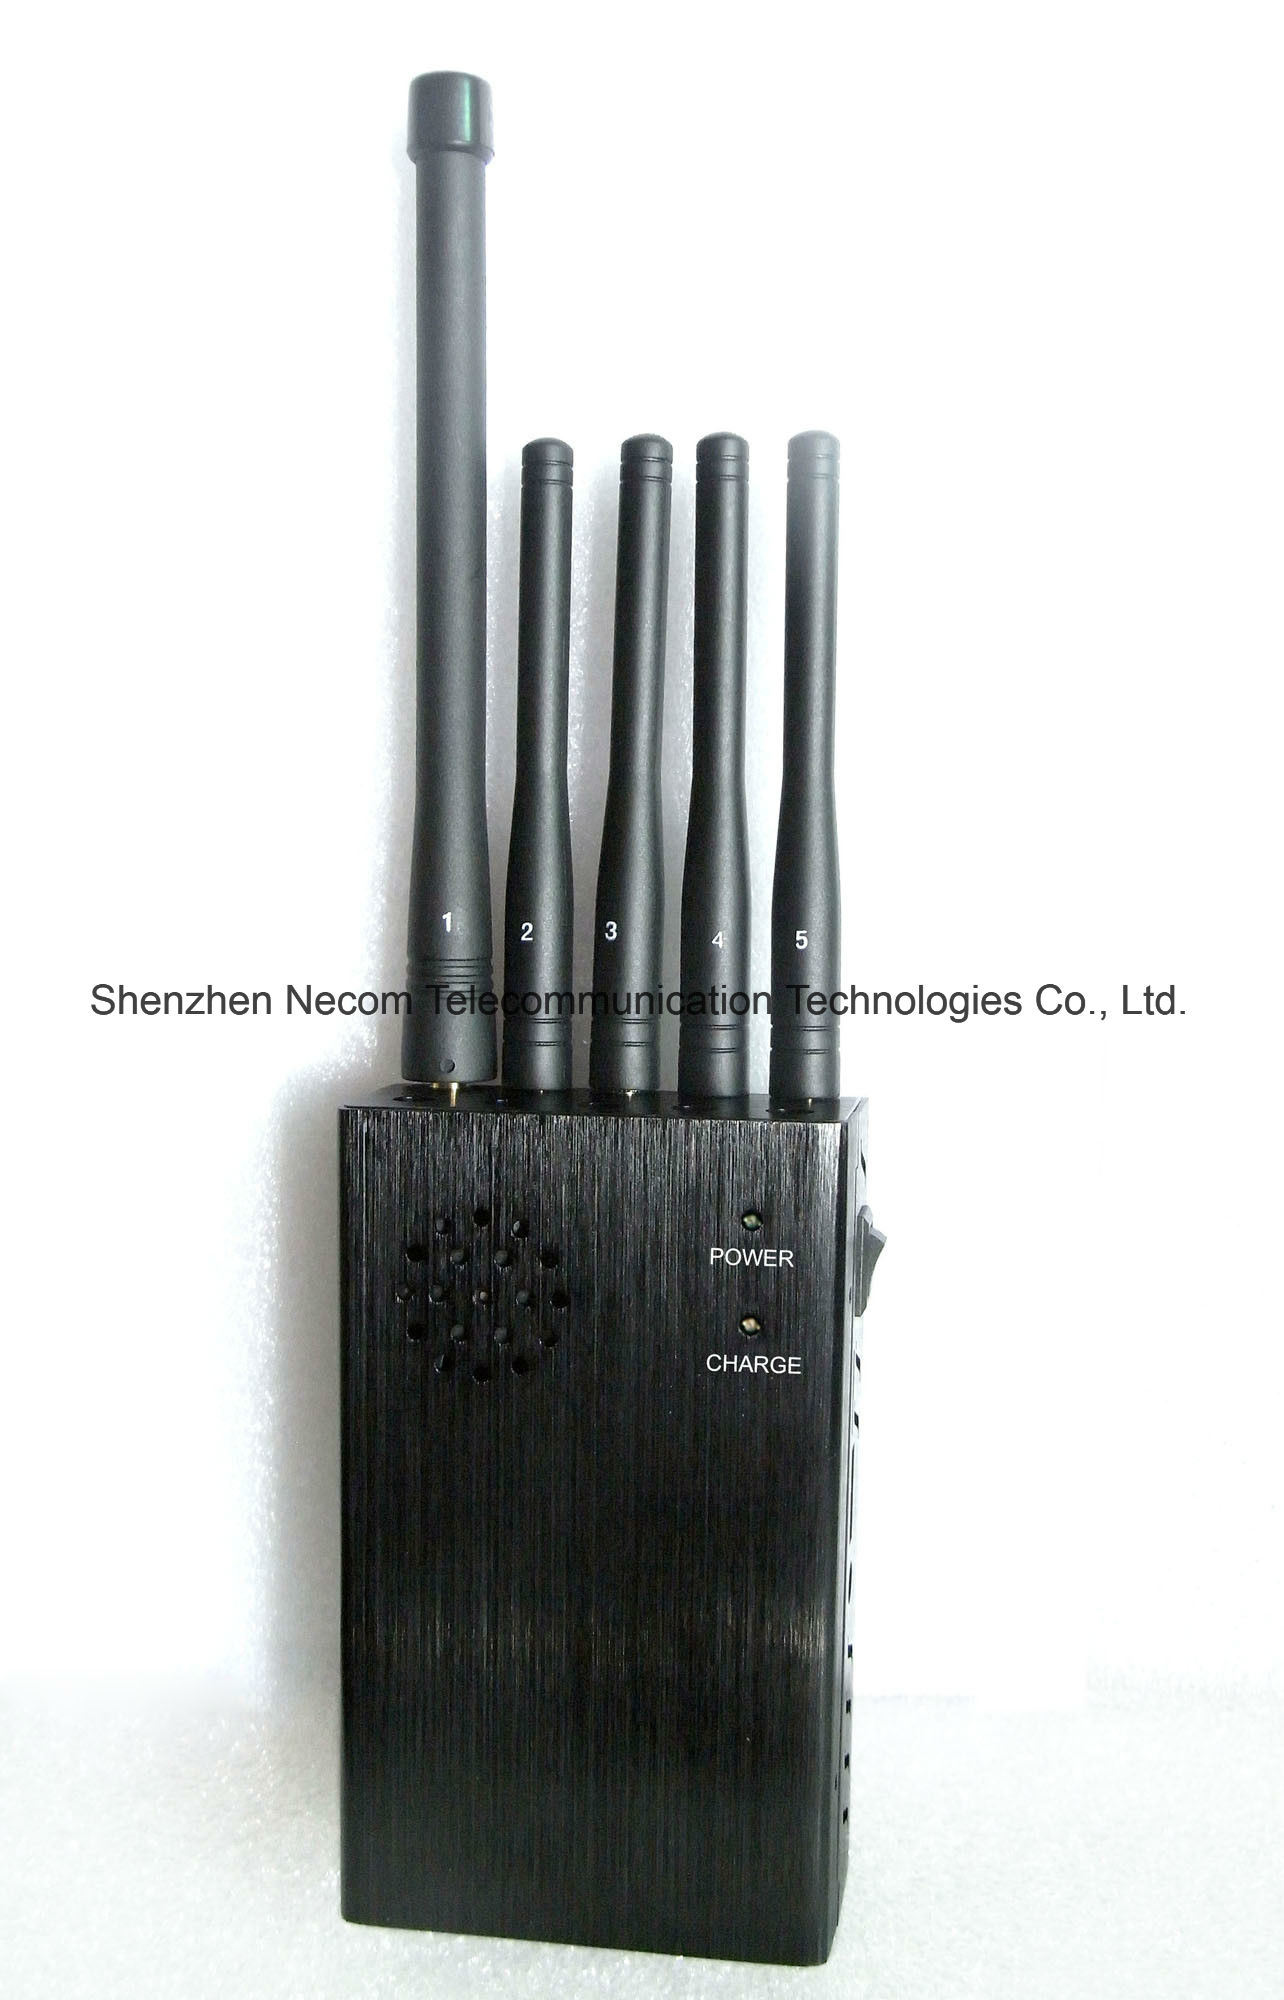 phone jammer bag lyrics - China 5 Antennas Handheld WiFi GPS Cell Phone Jammer, 5-Band Portable WiFi Bluetooth Wireless Video Cell Phone Jammer - China Portable Cellphone Jammer, GSM Jammer